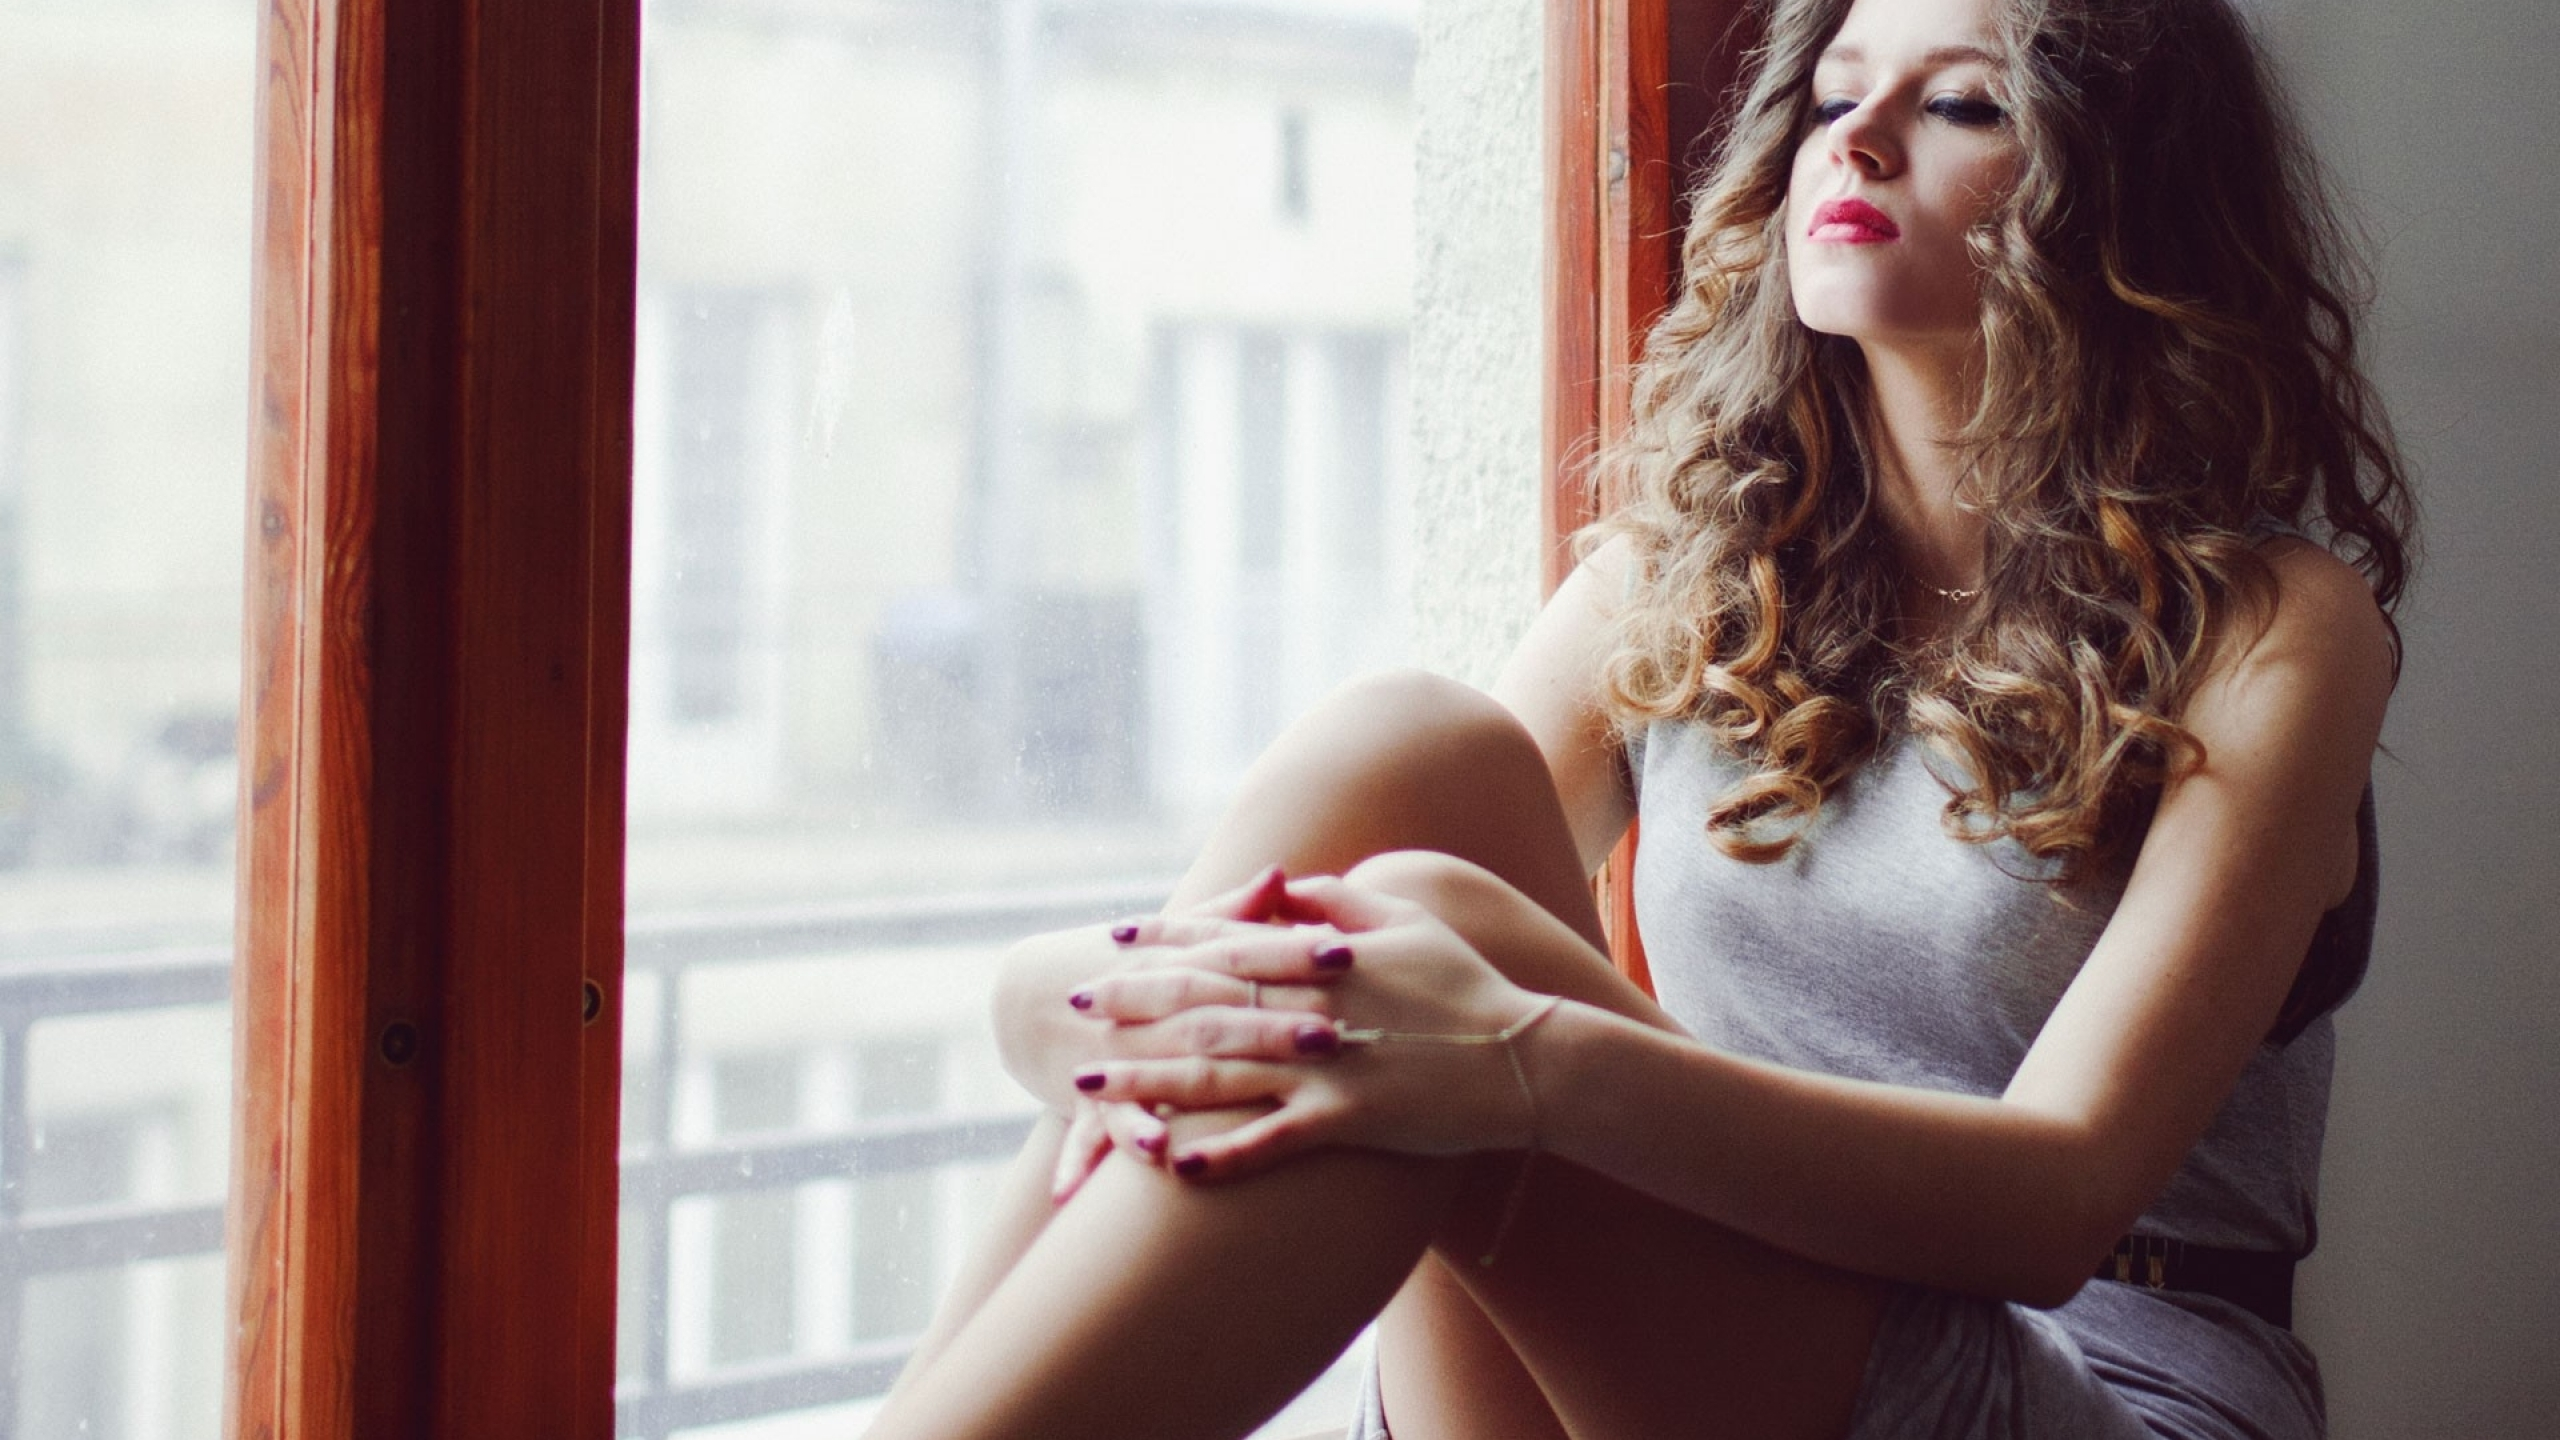 Kasia Lins curly hair women indoors (2560x1440)